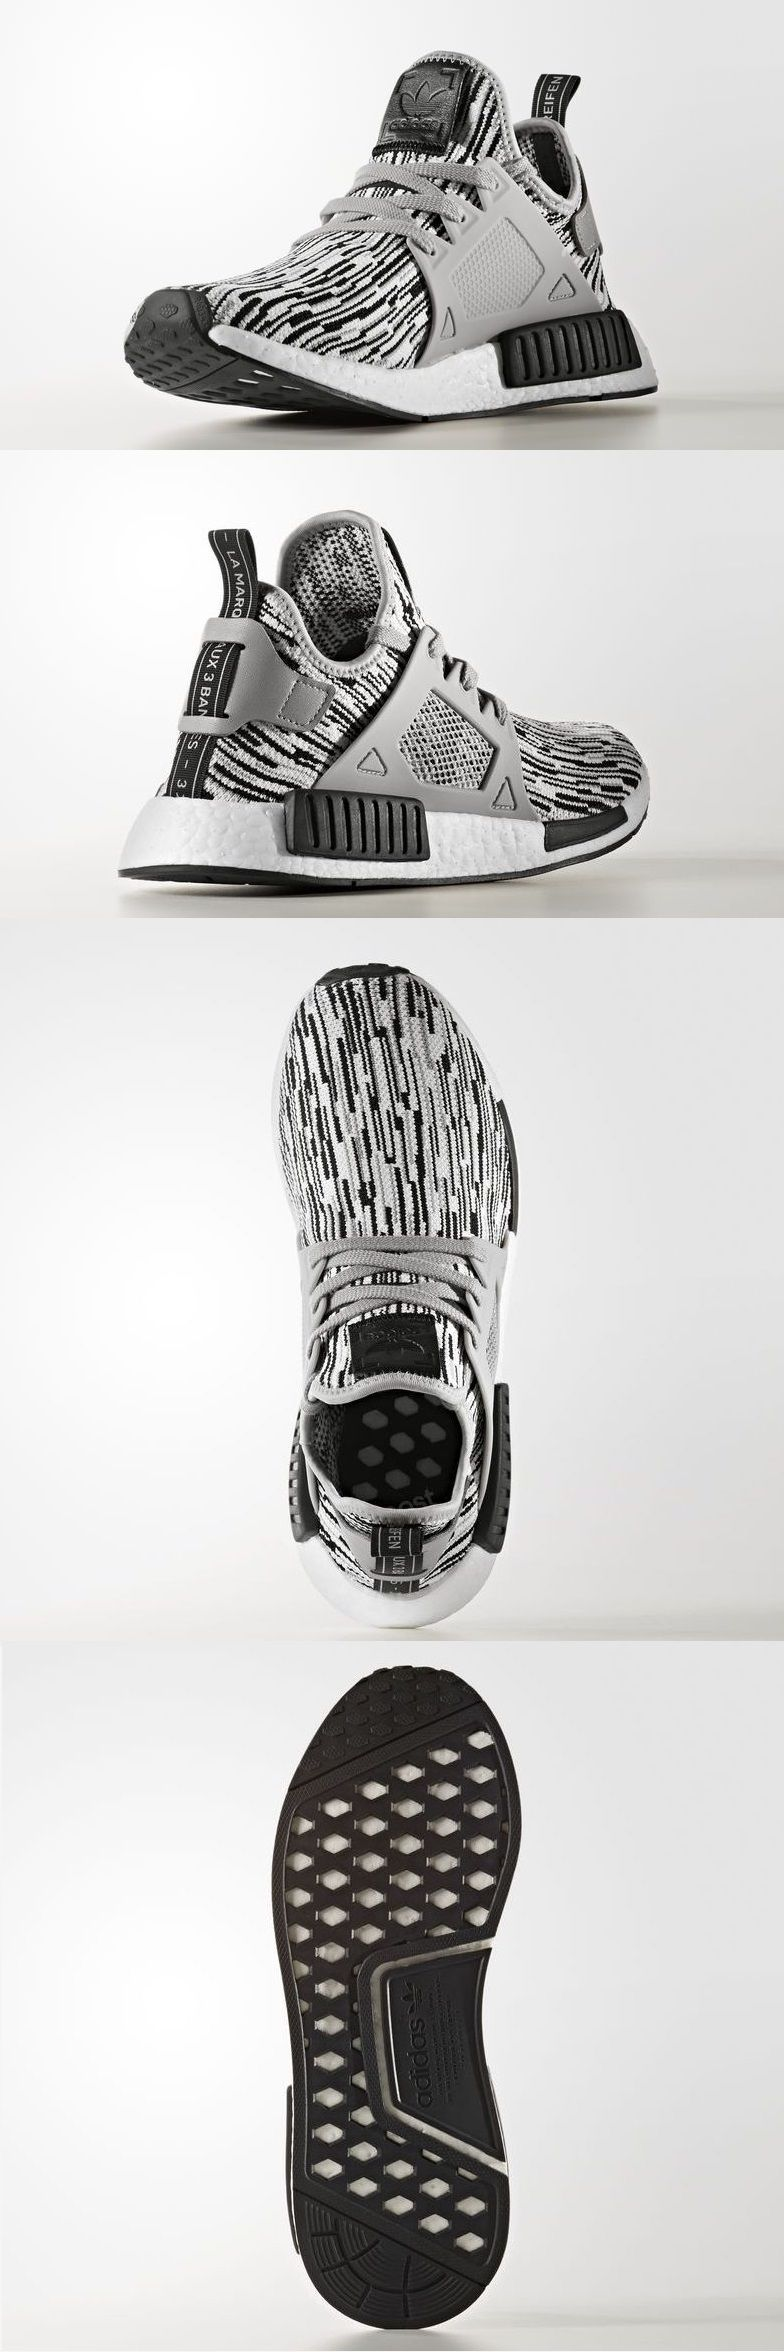 online store c144d 2bca5 ADIDAS #NMD #XR1 #OREO | style | Adidas shoes nmd, Fashion ...